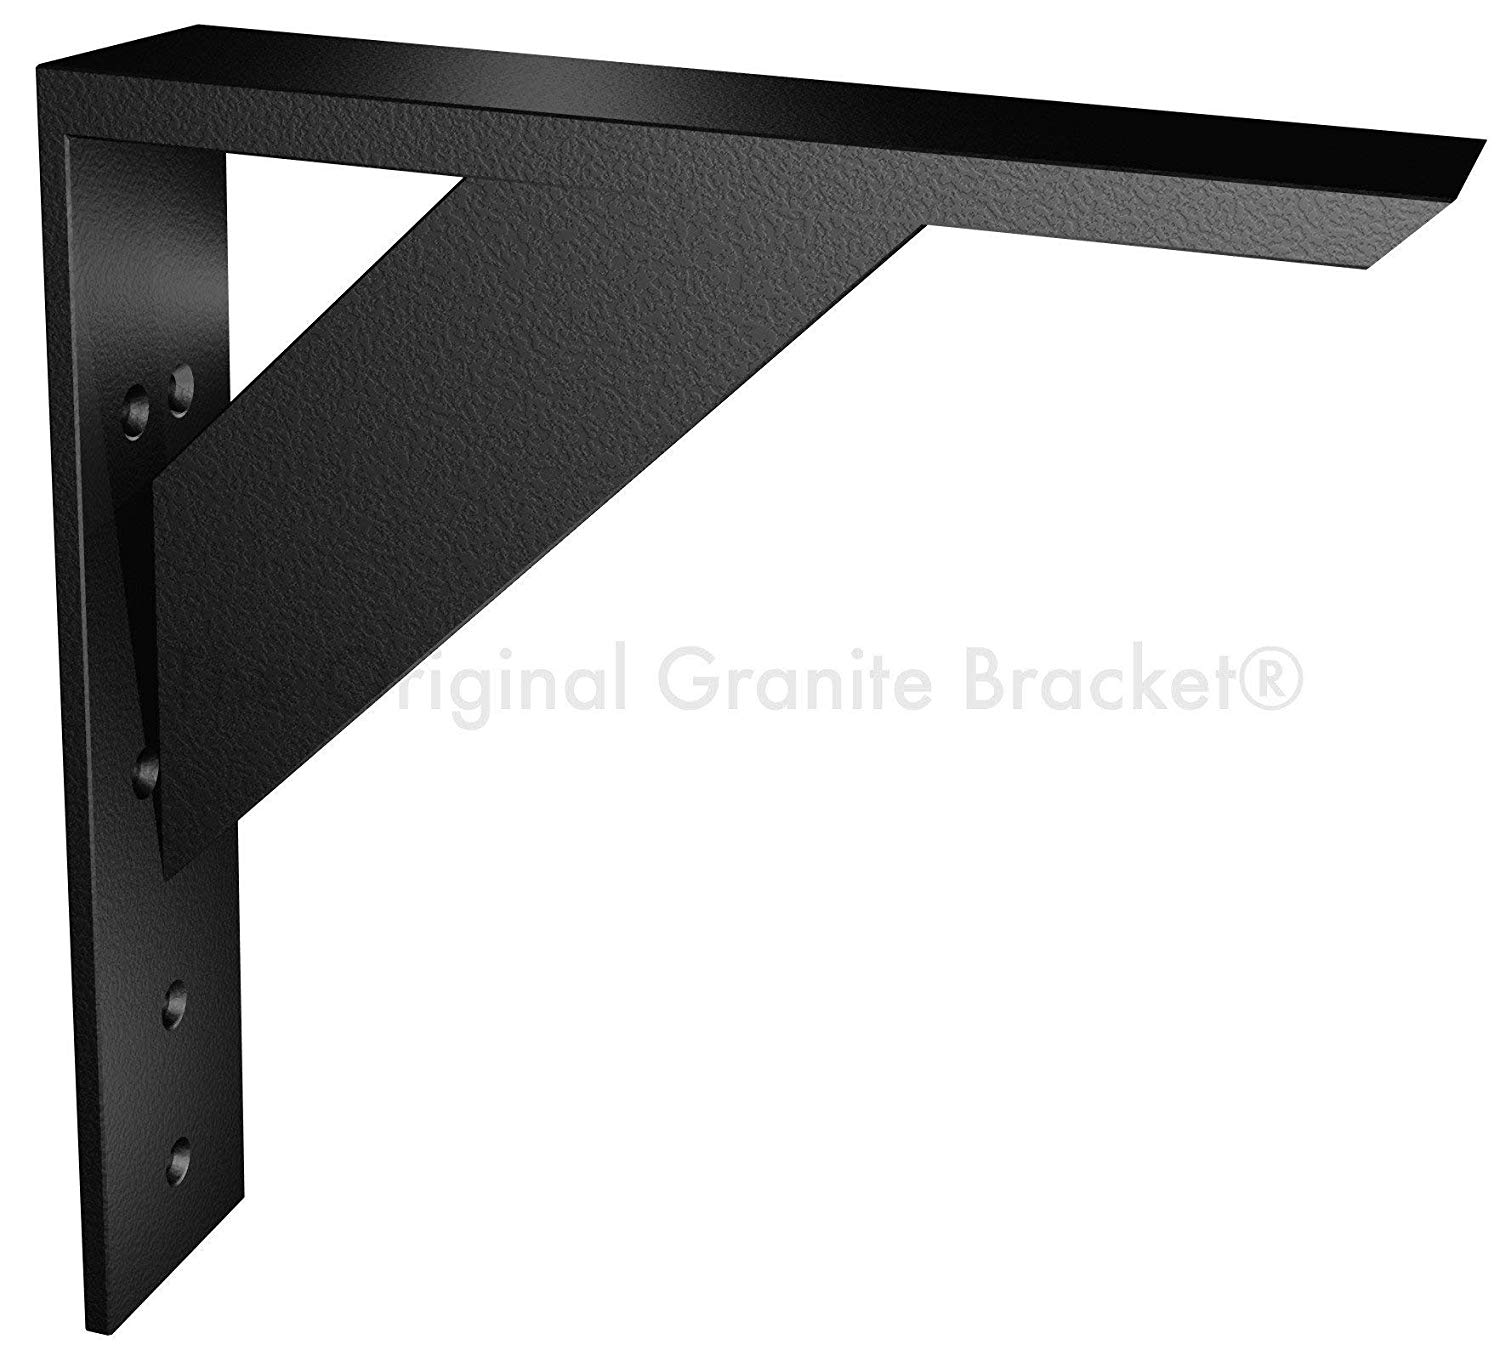 shelf bracket steel home improvement floating granite brackets hanging book shelves decorative liner narrow white desk flat screen mounts with support wall shelving unit bookshelf